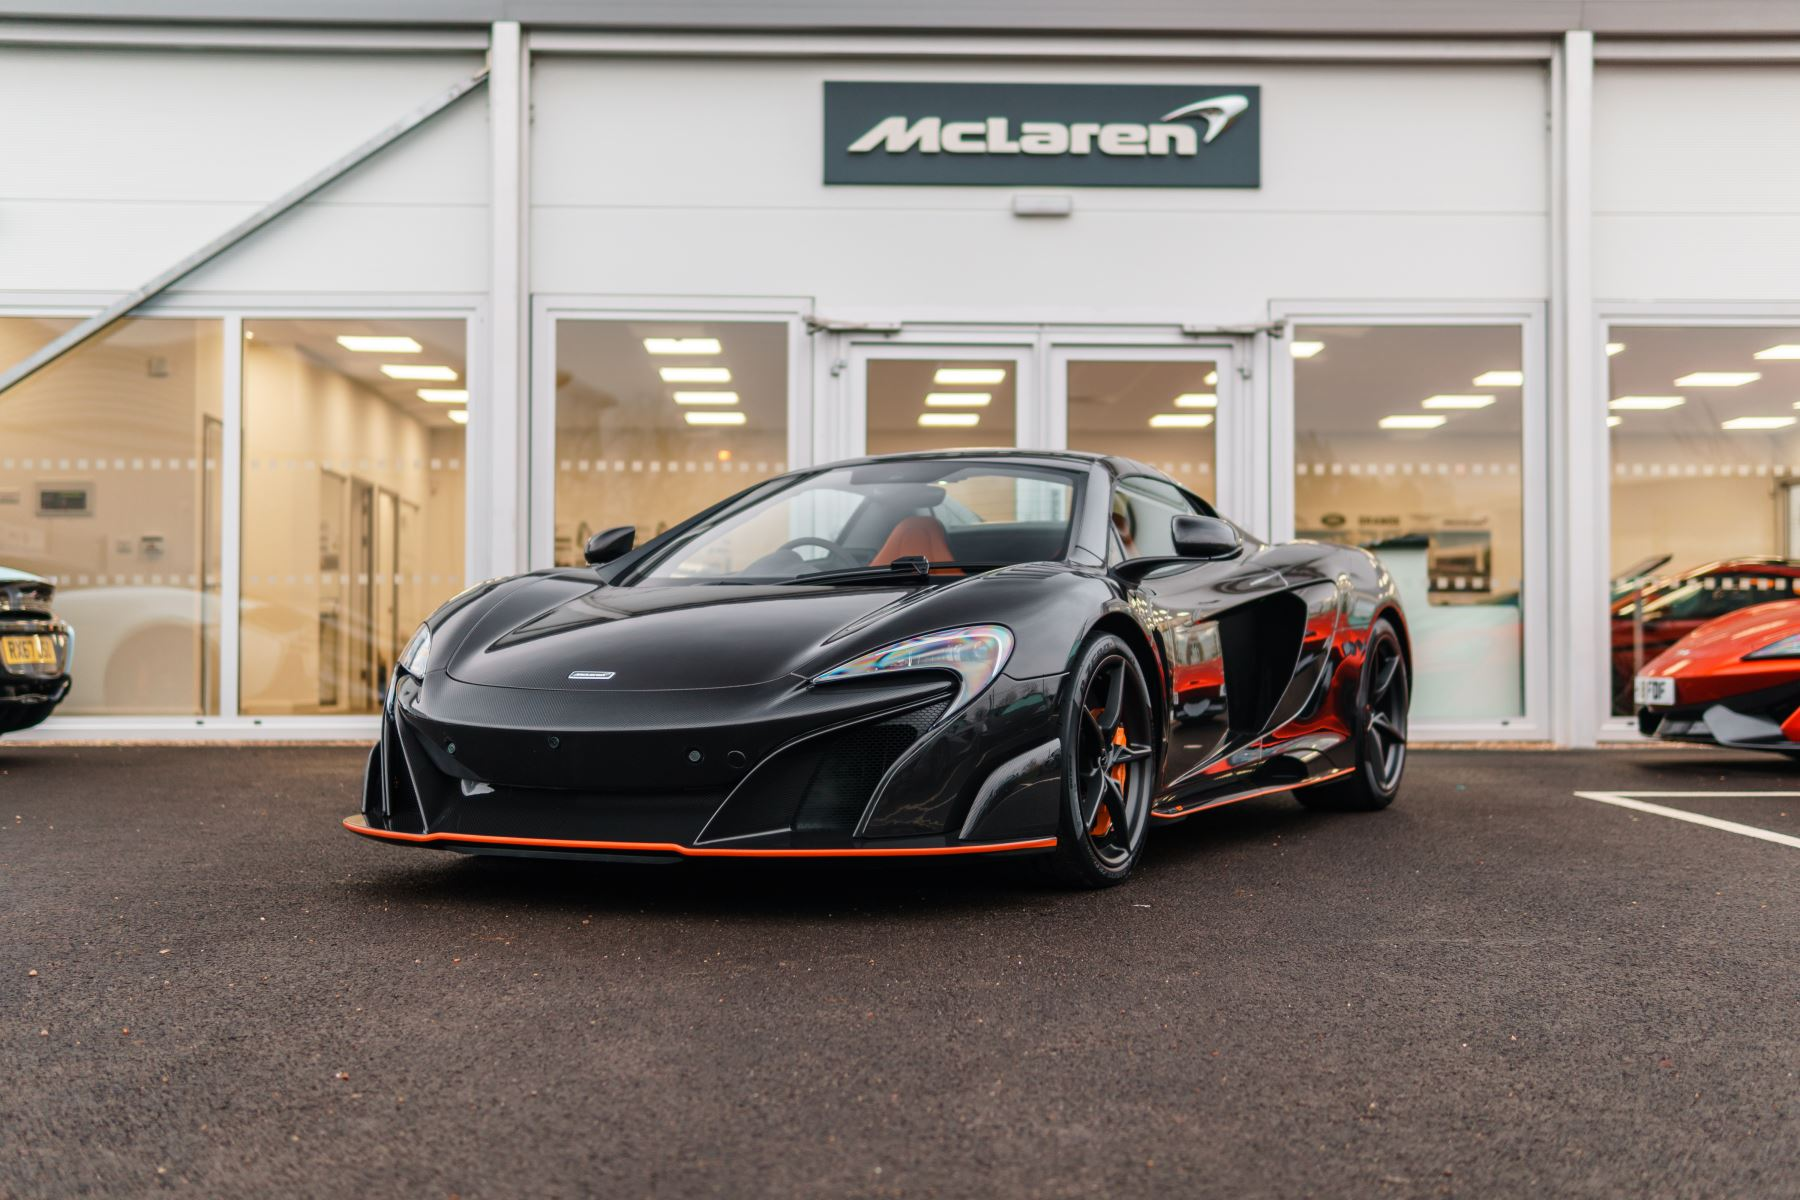 McLaren 675LT Spider MSO Carbon Series Semi-Automatic 2 door Convertible (2016) image